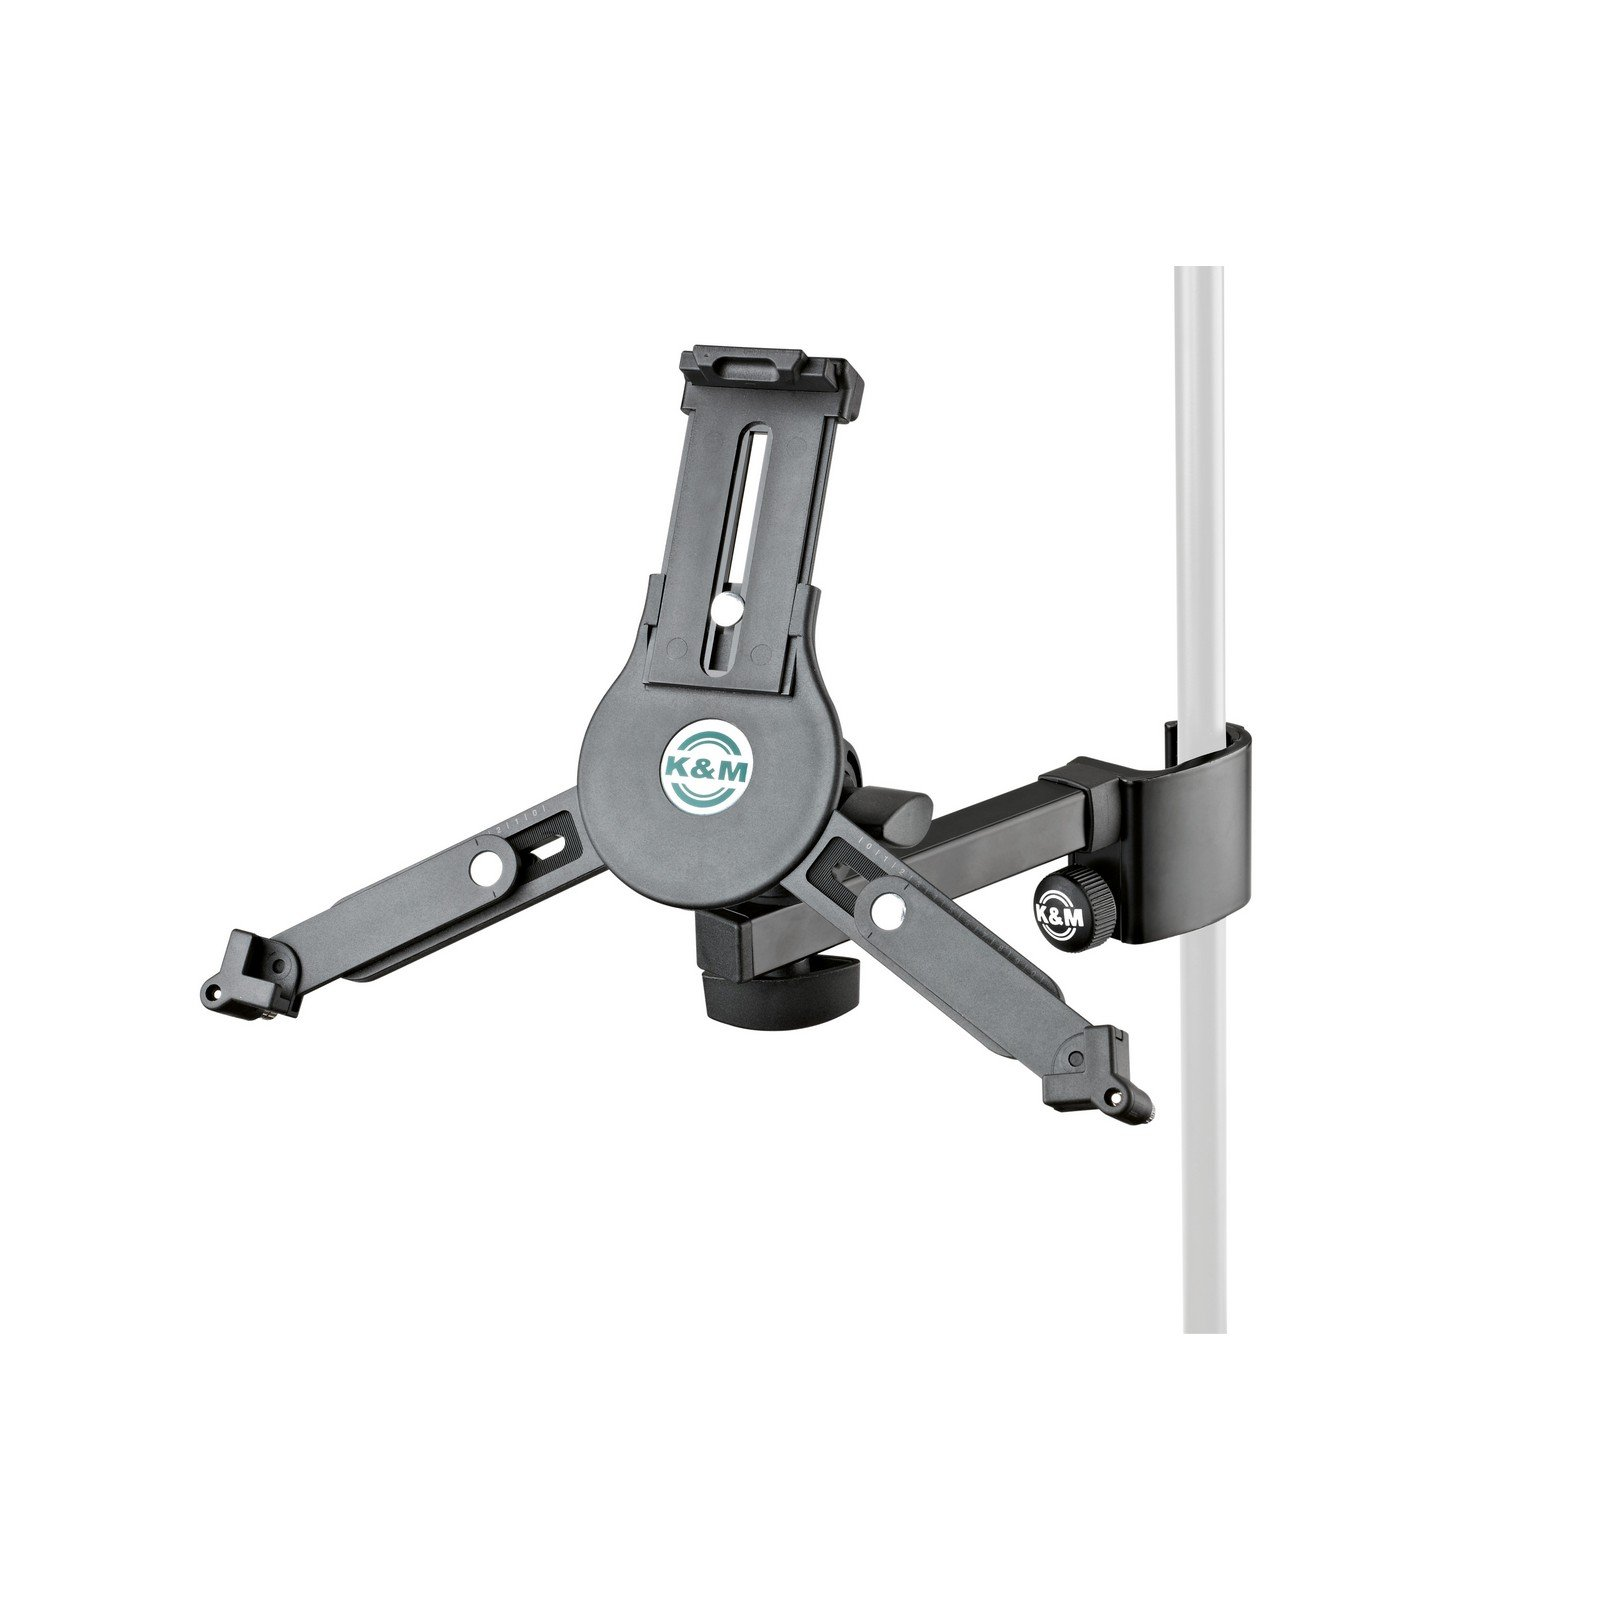 K&M 19791 | Universal Tablet Clamp on Stand Holder